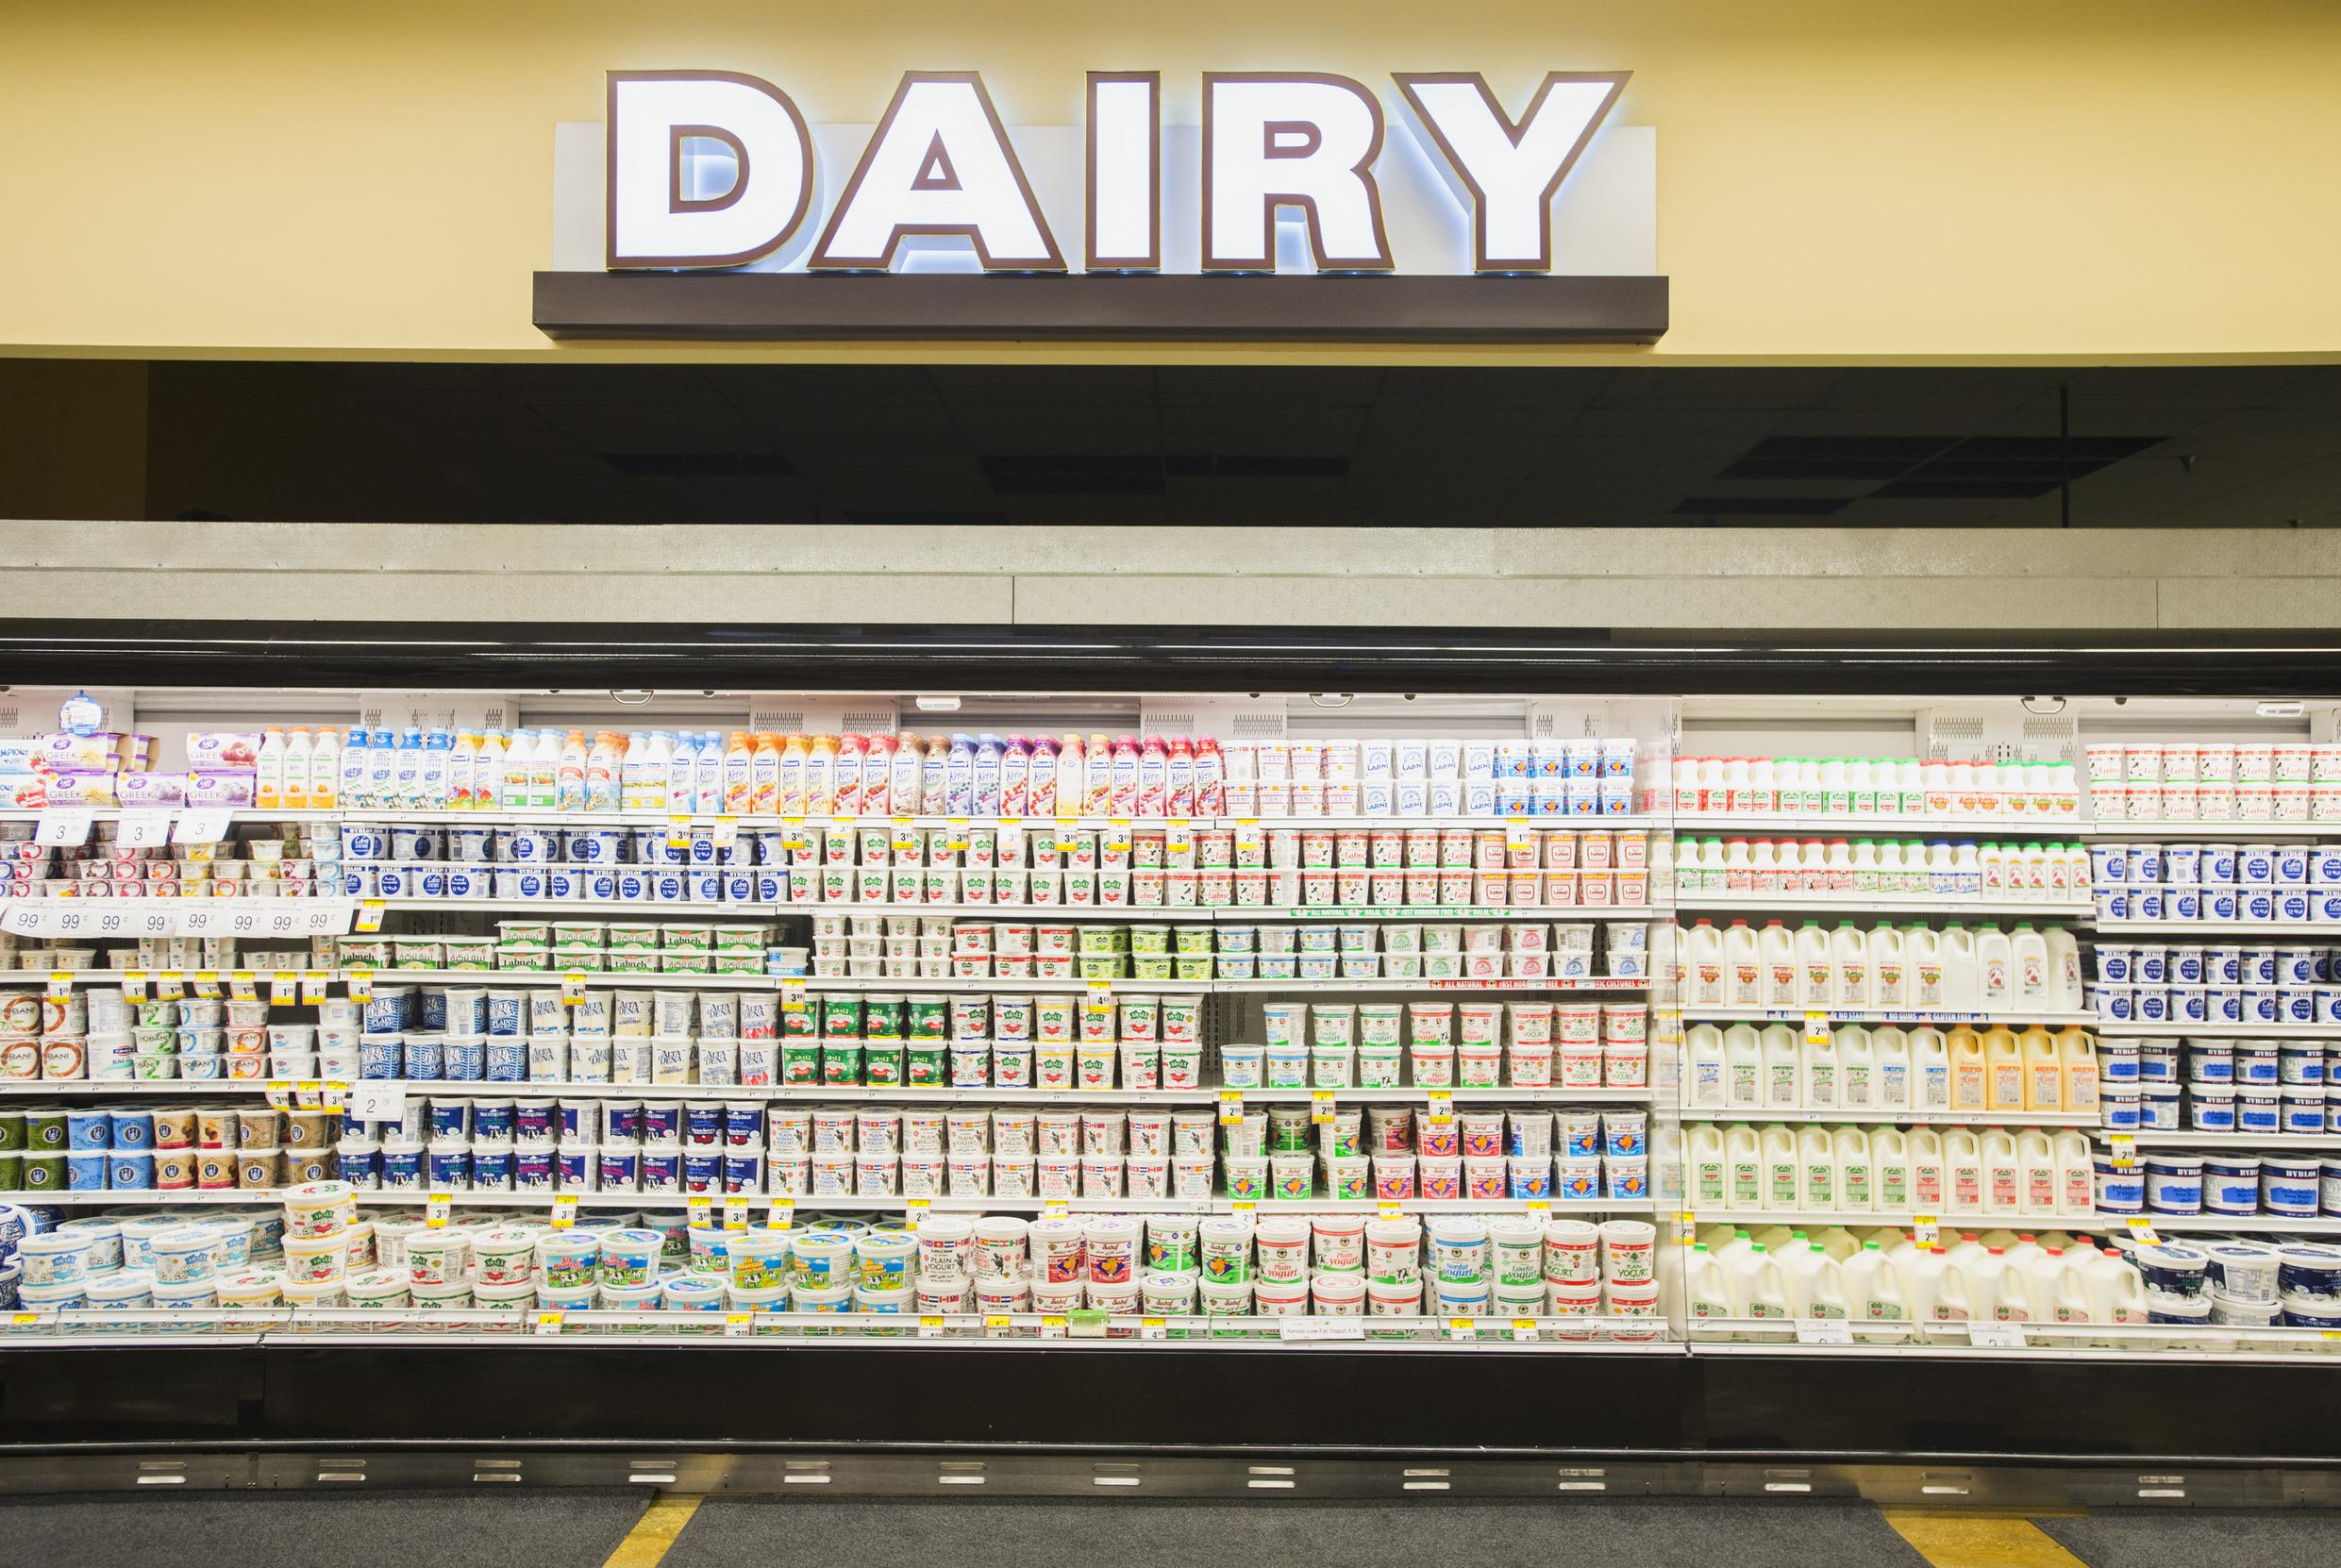 """<p><span style=""""color:rgb(0, 0, 0);font-family:helvetica, arial;"""">Supermarkets do their best to spread staples far apart to force shoppers to walk through the whole store and lead them into temptation (meat in the back right hand corner, dairy in the back left hand corner).</span><br style=""""color:rgb(0, 0, 0);font-family:helvetica, arial;""""/> <br style=""""color:rgb(0, 0, 0);font-family:helvetica, arial;""""/> <span style=""""color:rgb(0, 0, 0);font-family:helvetica, arial;"""">(Industry experts claim that this is for logistical reasons. Milk needs to be refrigerated straight away and the lorries unload at the back. That does not explain why other staples like eggs are at the back.)</span></p>  <p></p>"""